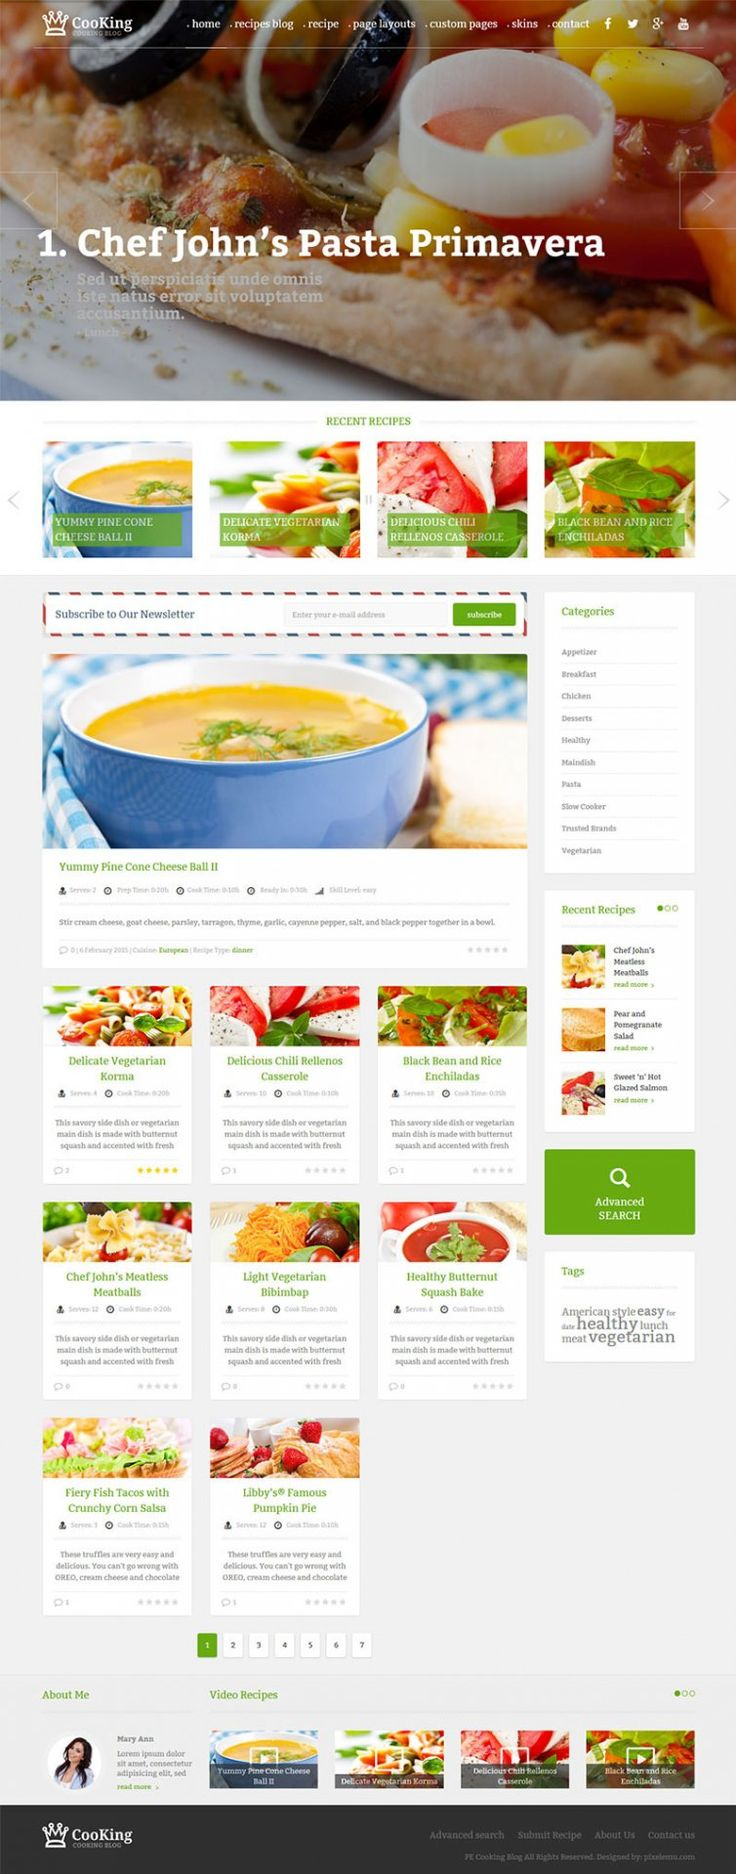 Cooking Blog WordPress theme Example with vertical full-width header #blog #cooking #food #recipes #wordpress #theme https://www.pixelemu.com/wordpress-themes/i/1-cooking-blog